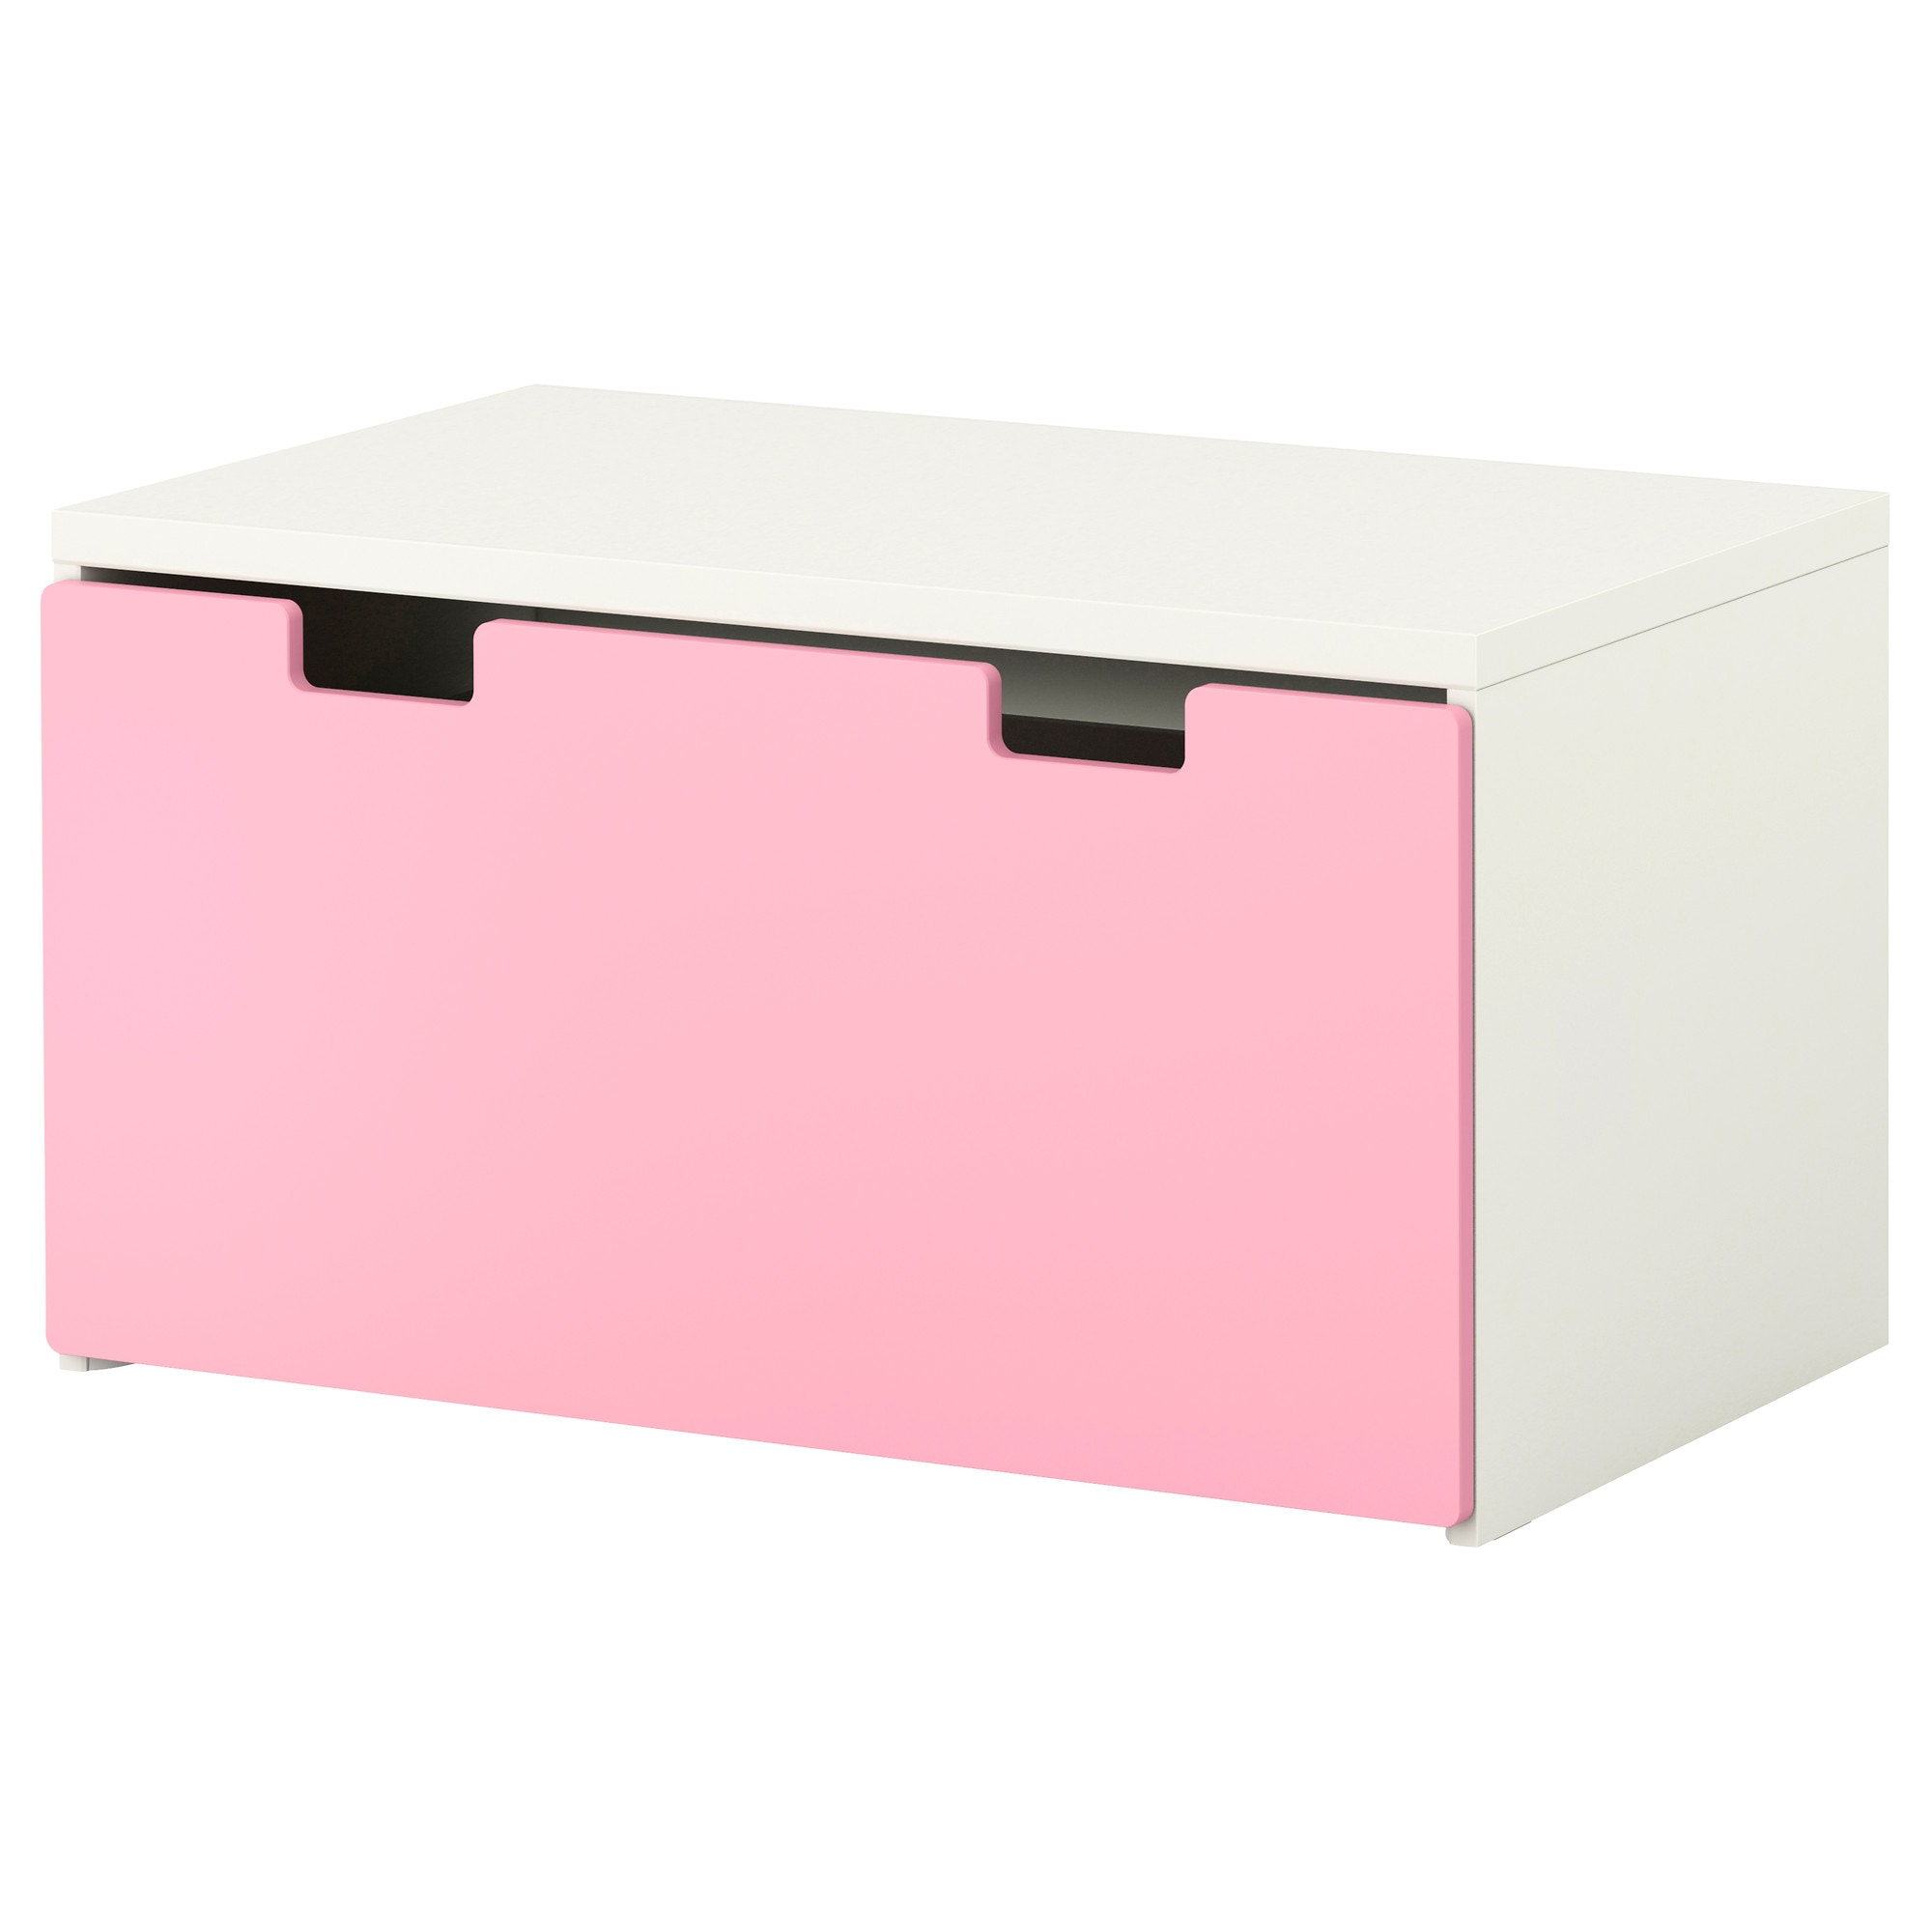 kitchen cupboards ikea chest cheap cupboard dressers drawer with cabinet pulls of low door dresser and drawers handles bedroom knobs